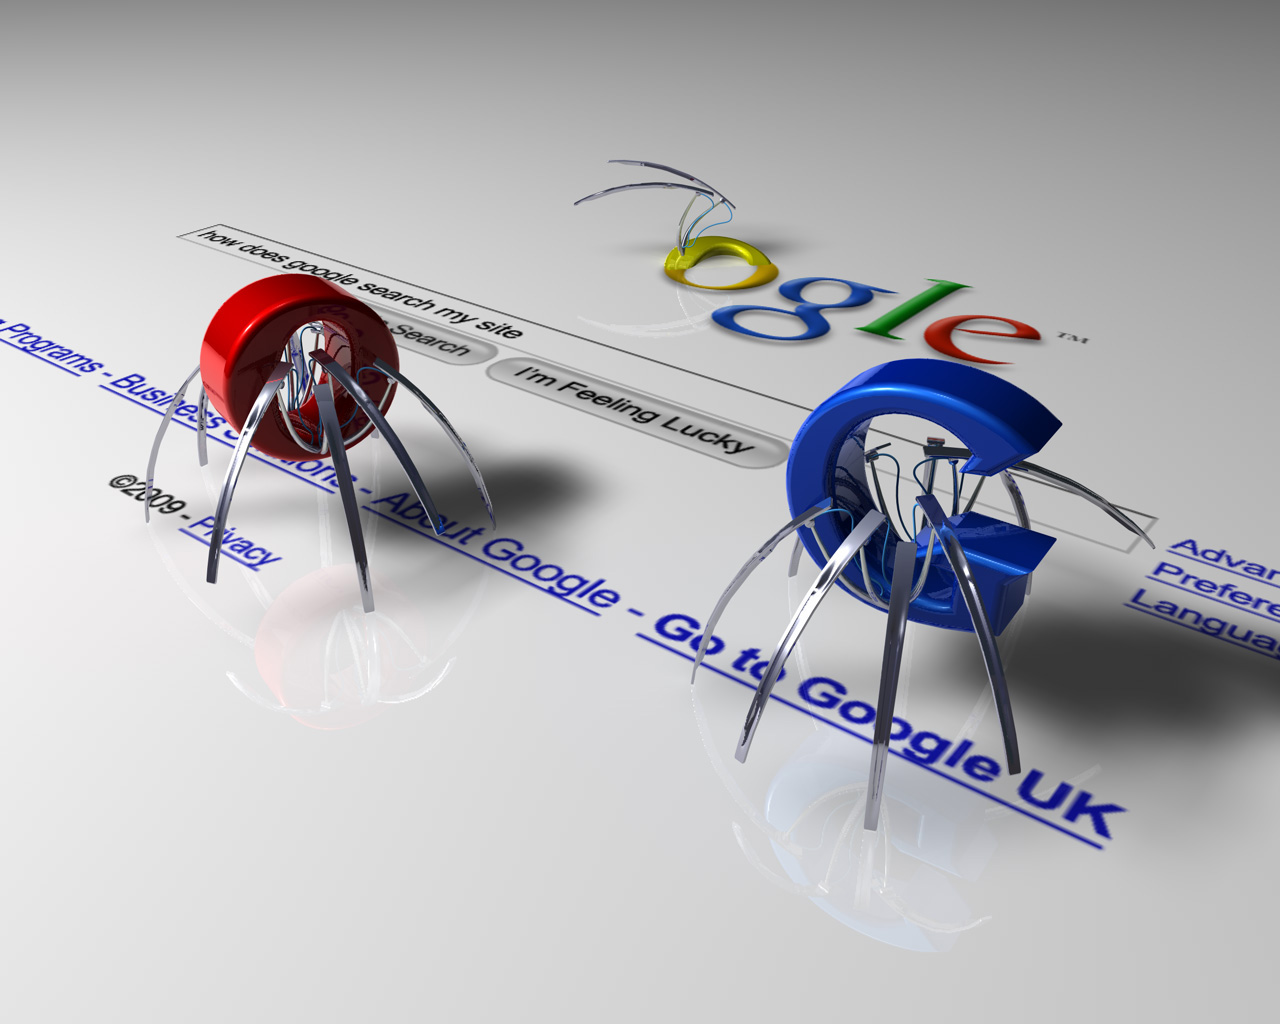 Total SEO Link Building Package - Increase Google Rankings With All-In-One High PR Quality BackLinks